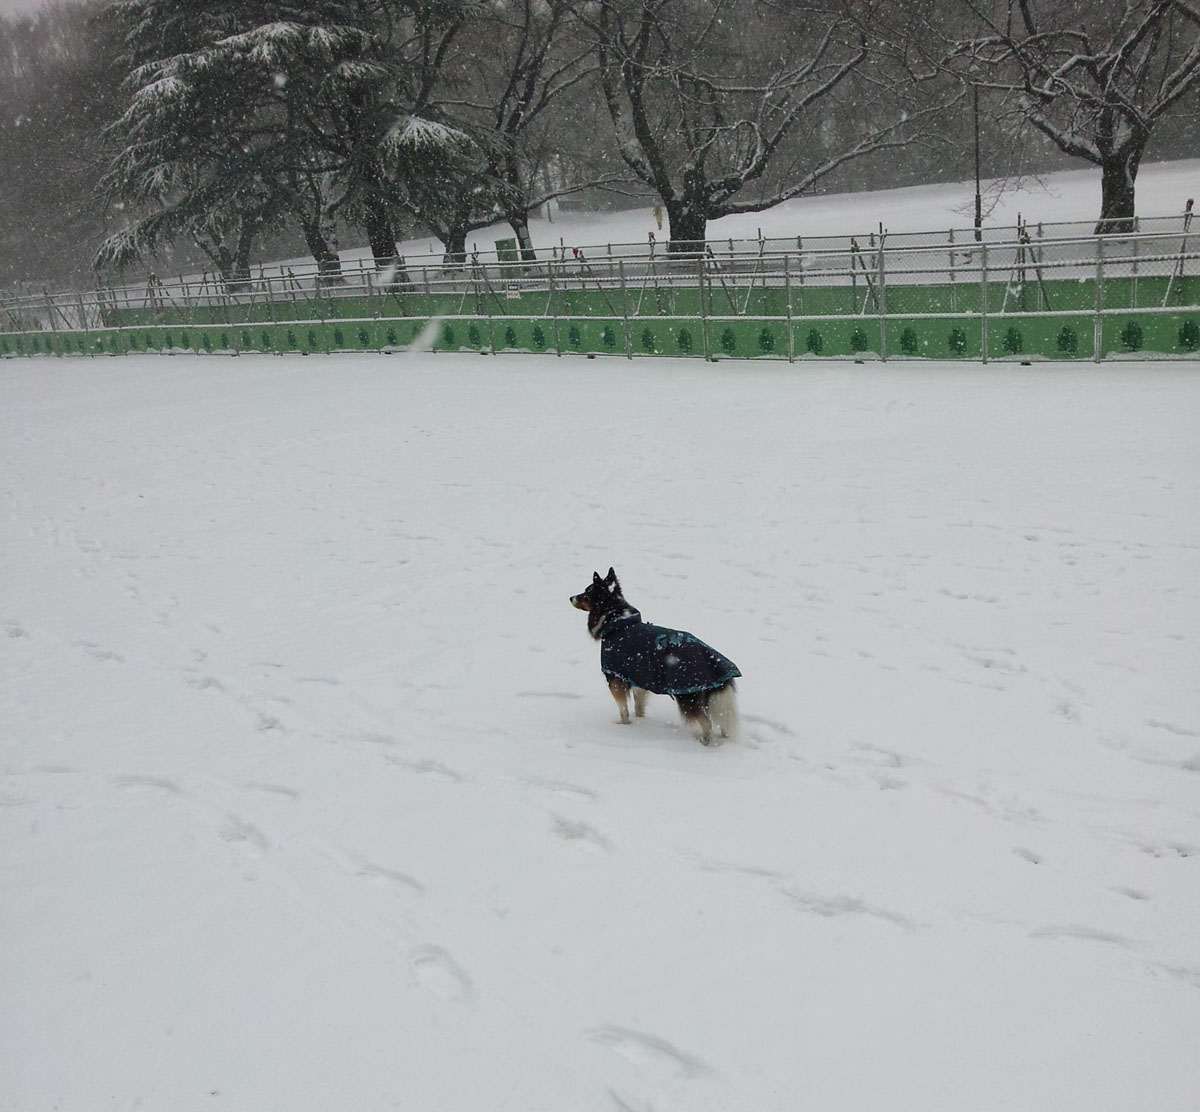 Dog in the snow - Feb. 8, 2014